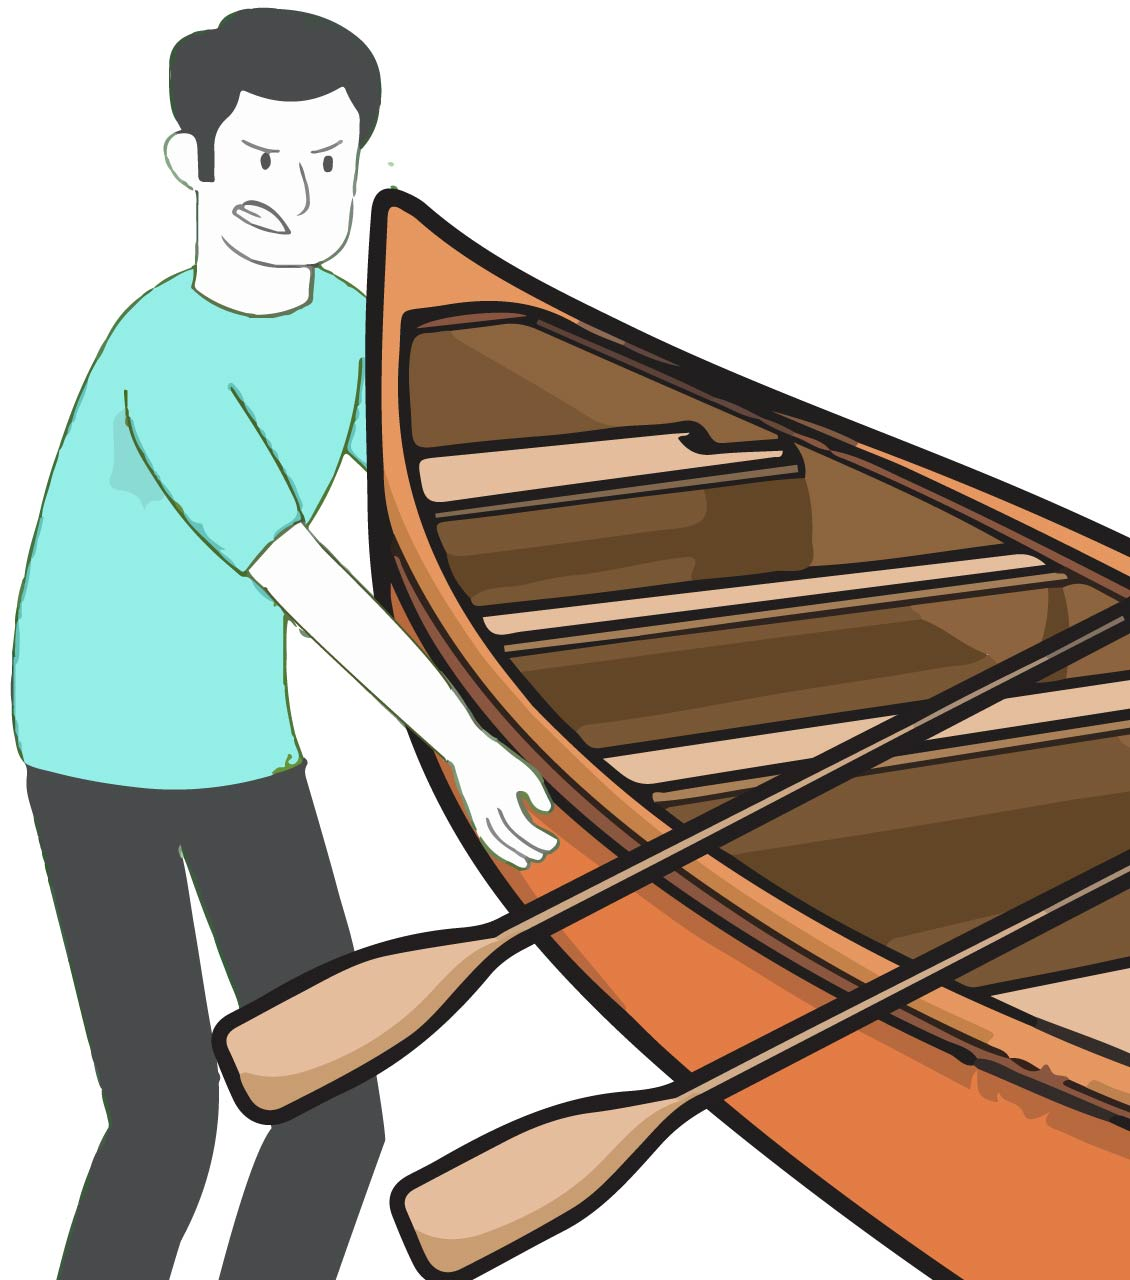 Canoe Removal & Disposal Services